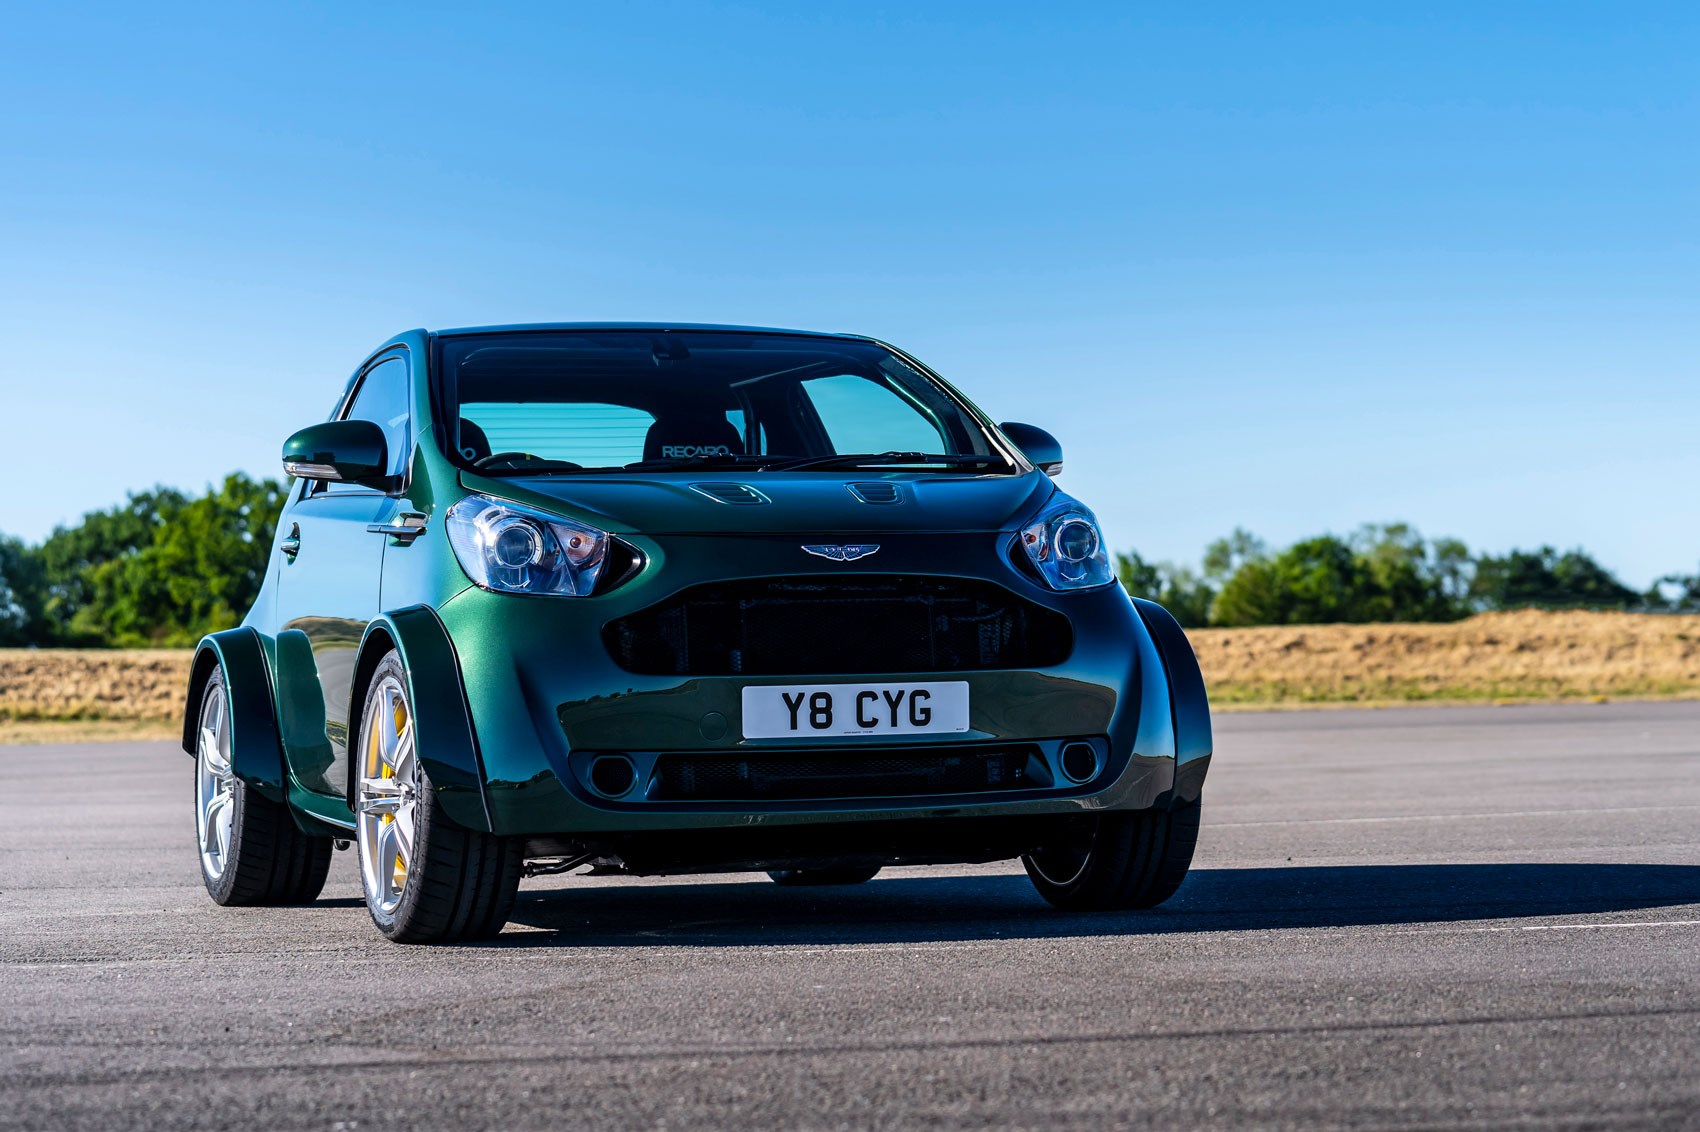 Big Things Small Packages Aston Martin Reveals V8 Cygnet Car